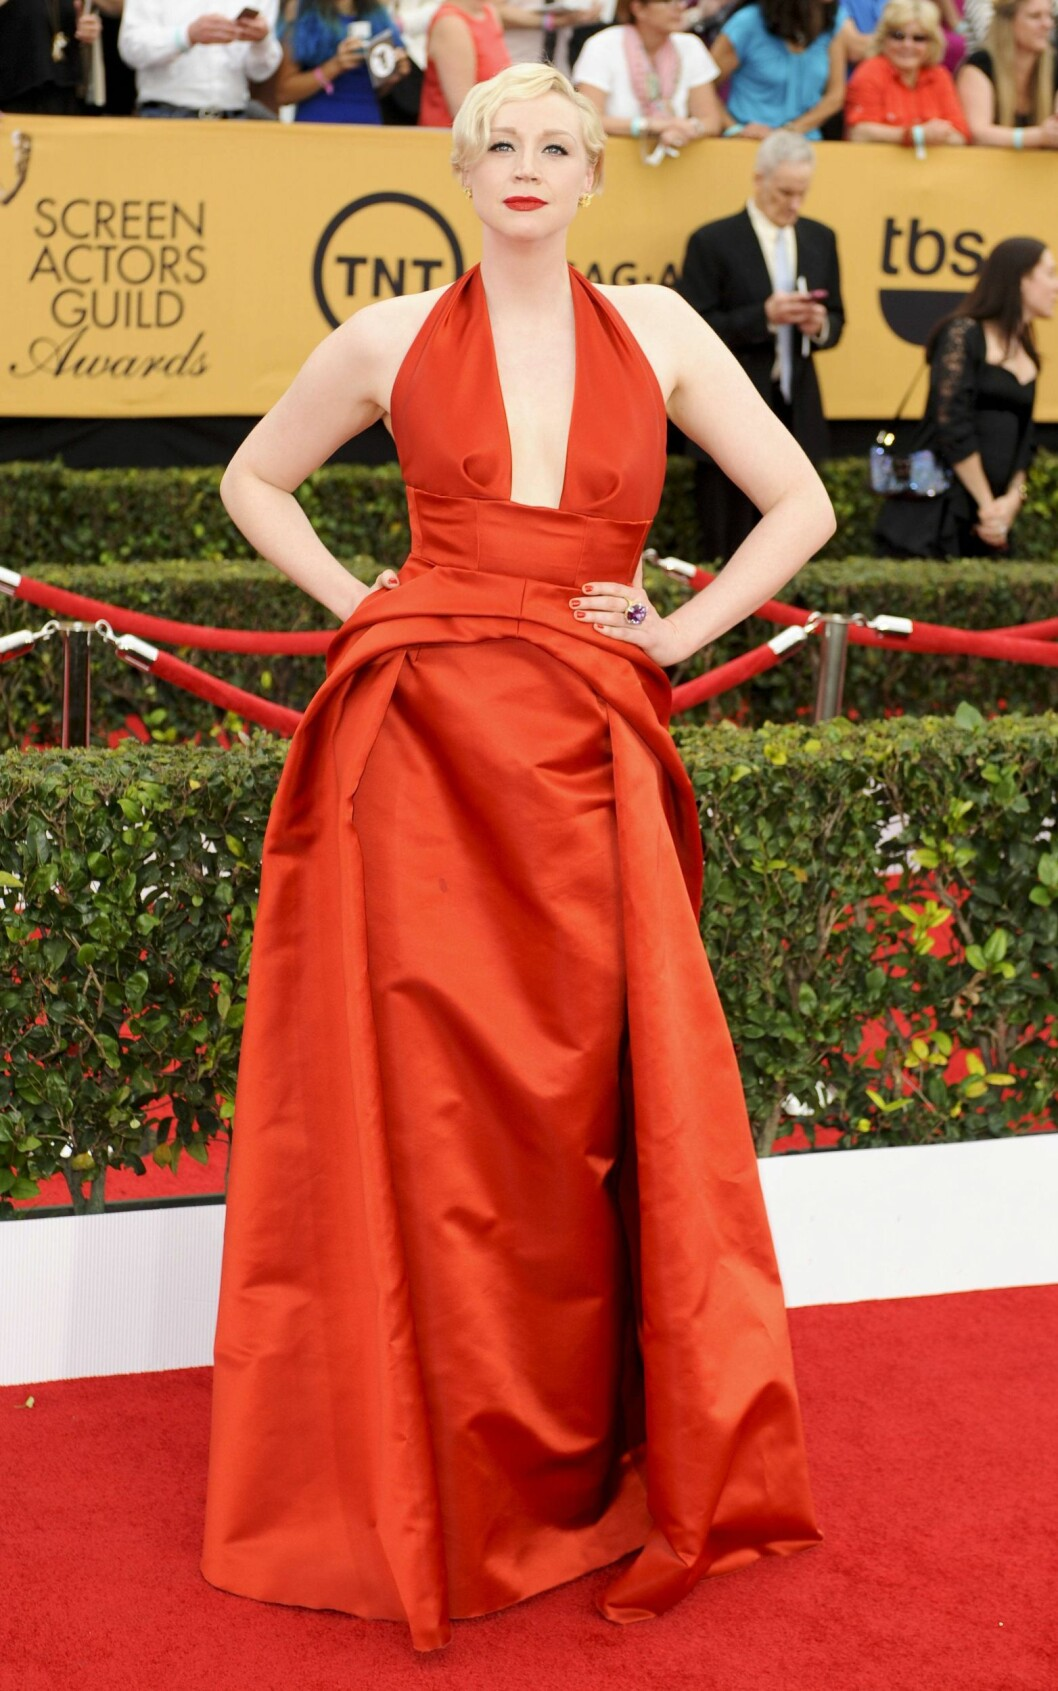 Gwendoline Christie  Foto: imago/PicturePerfect/ All Over P